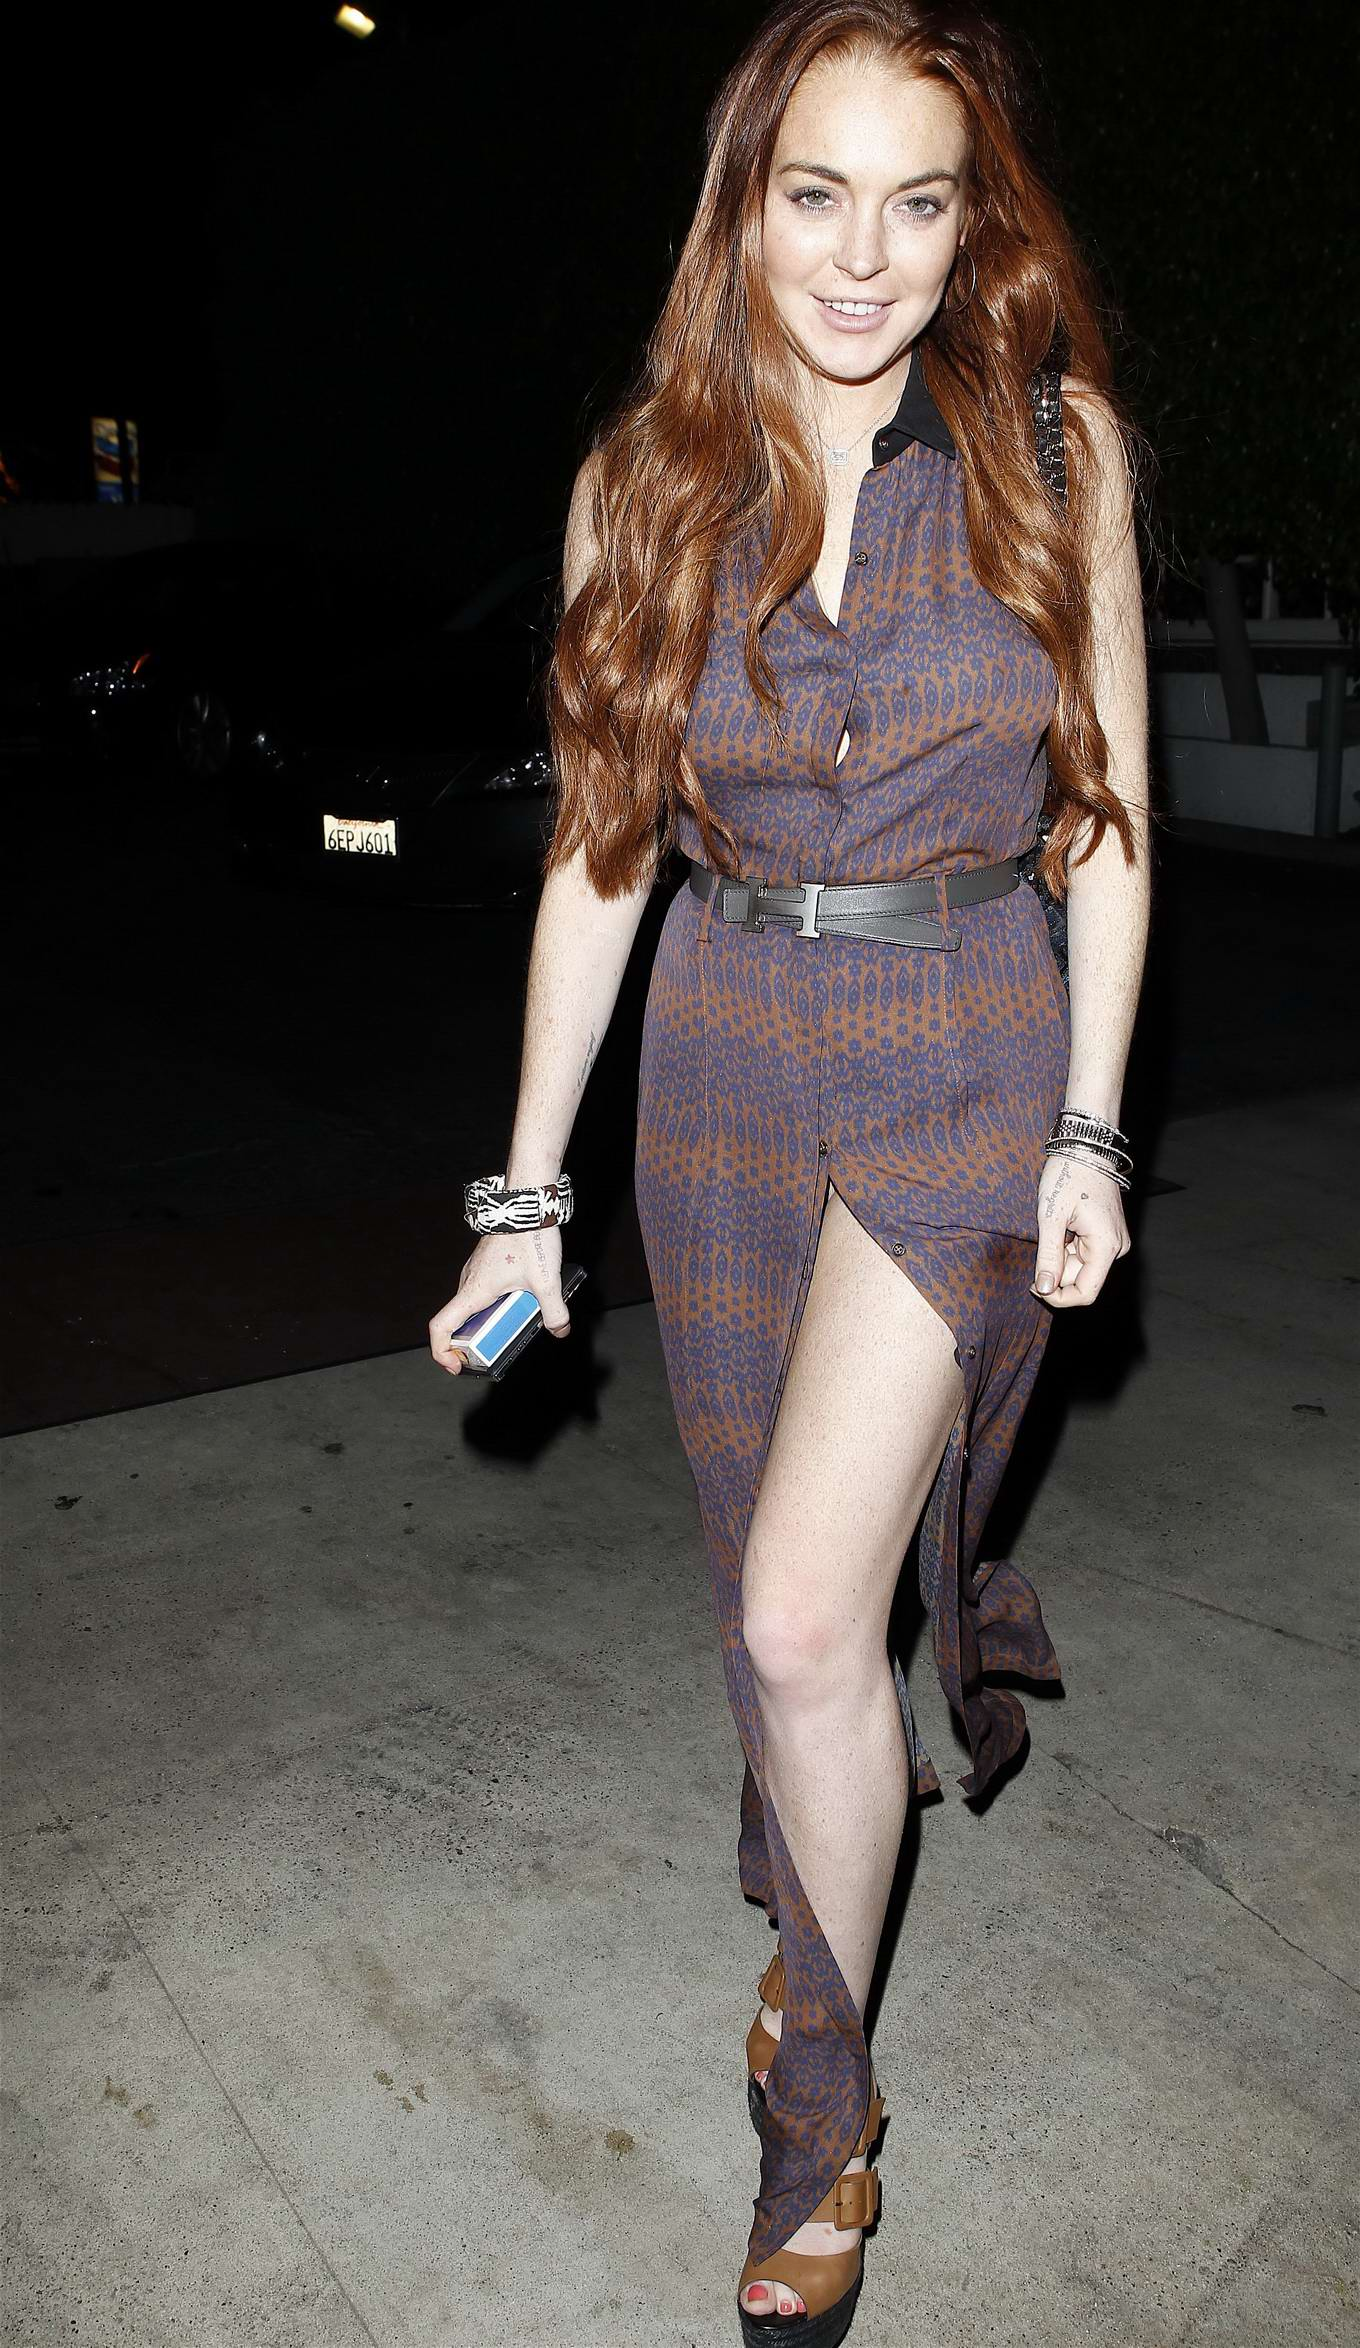 Remarkable, this Lindsay lohan flash absolutely